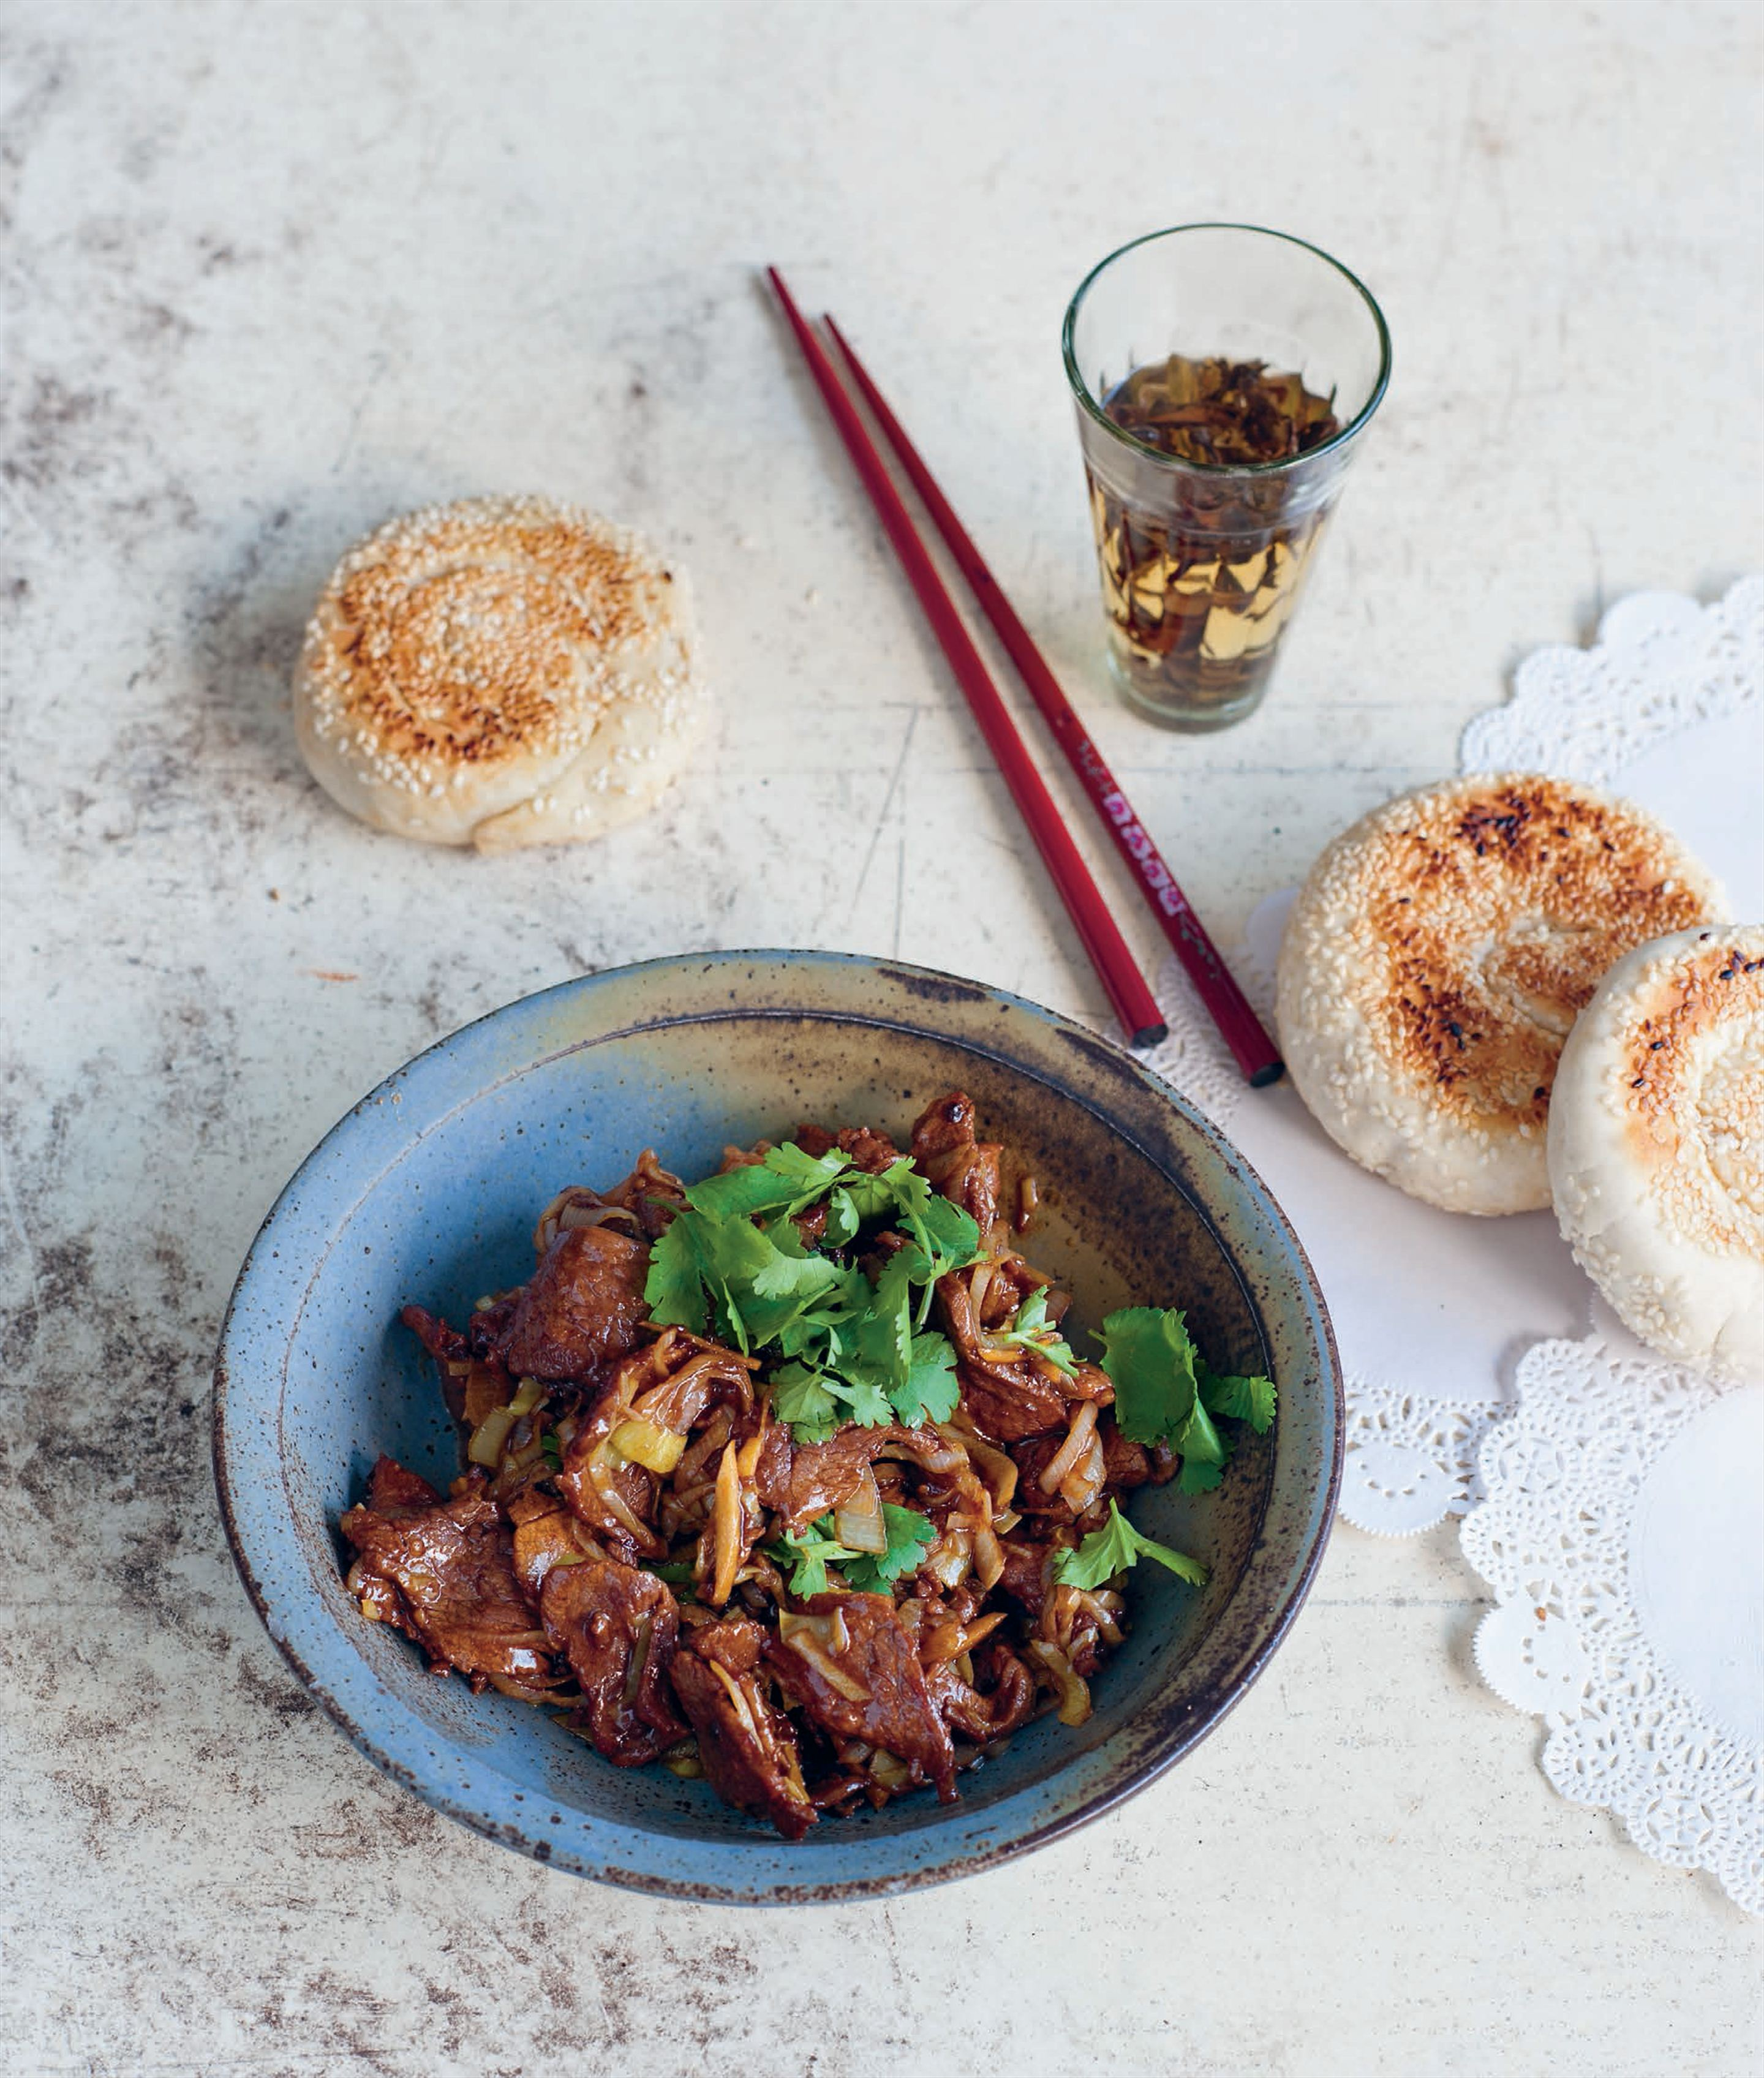 Stir-fried lamb with leeks and coriander